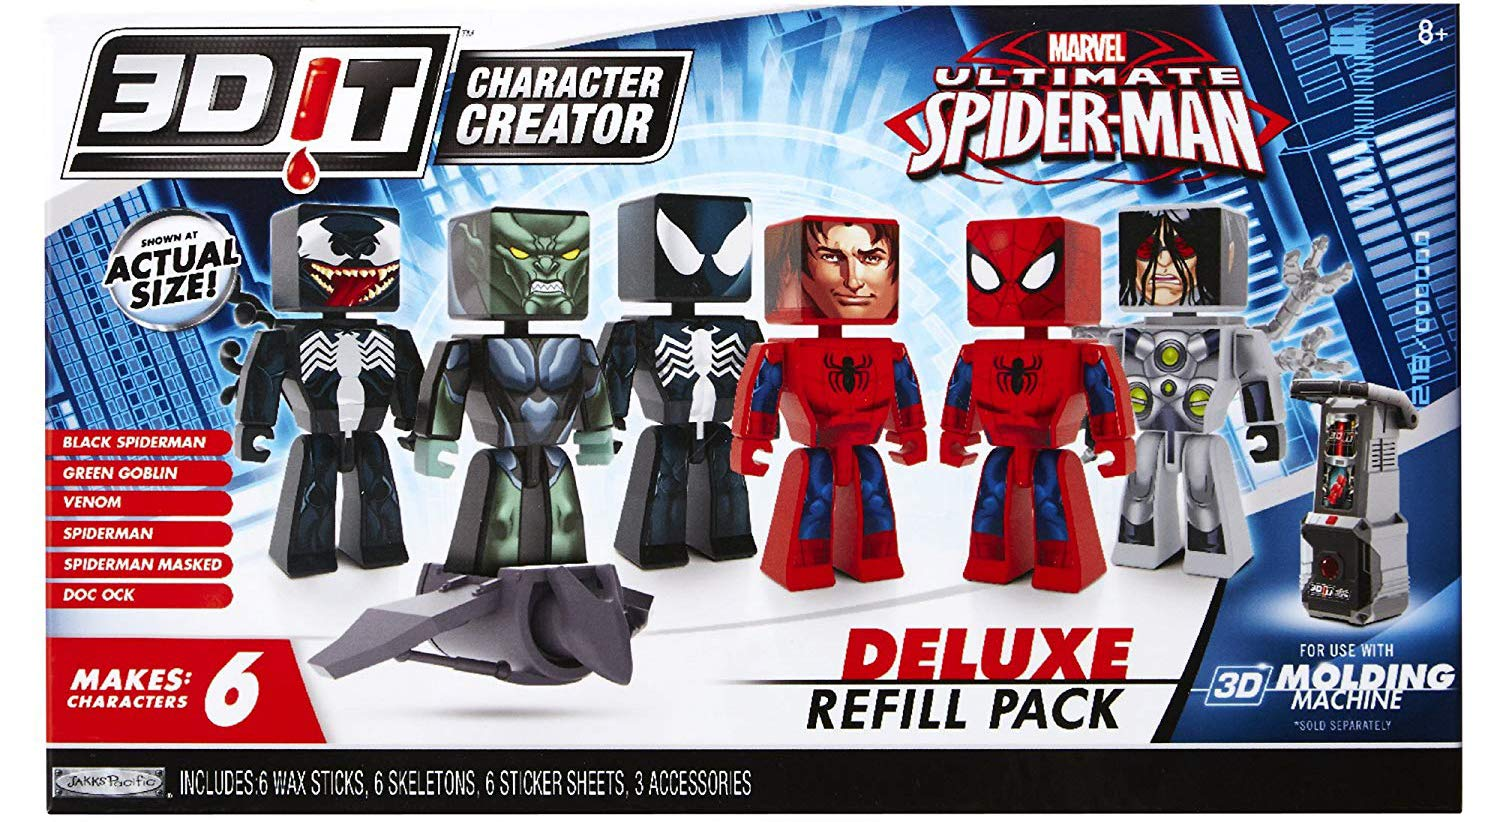 3D Character Creator Marvel Deluxe Refill Pack Novelty Toy